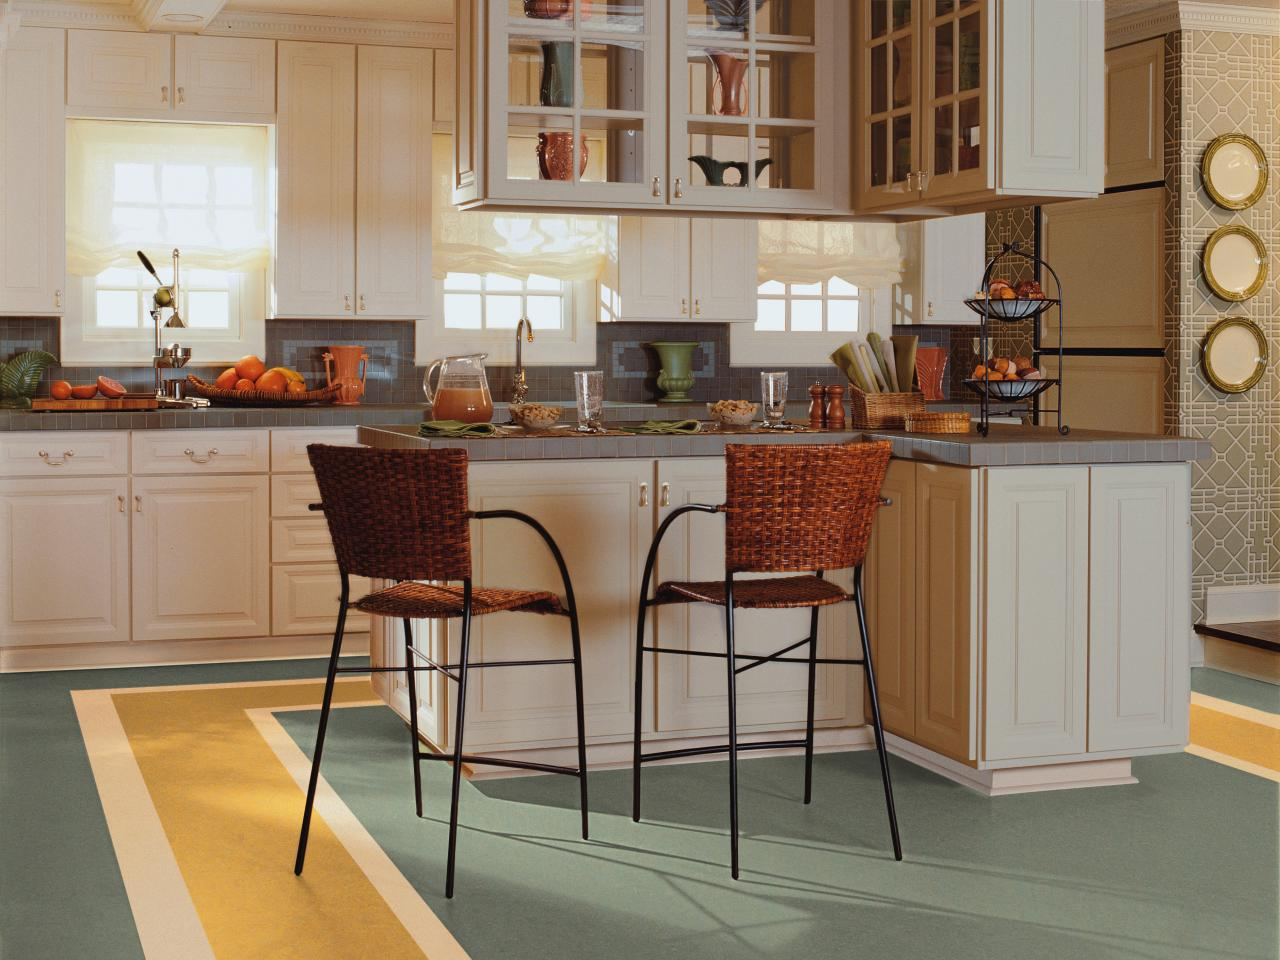 Linoleum kitchen flooring // sndimg.com